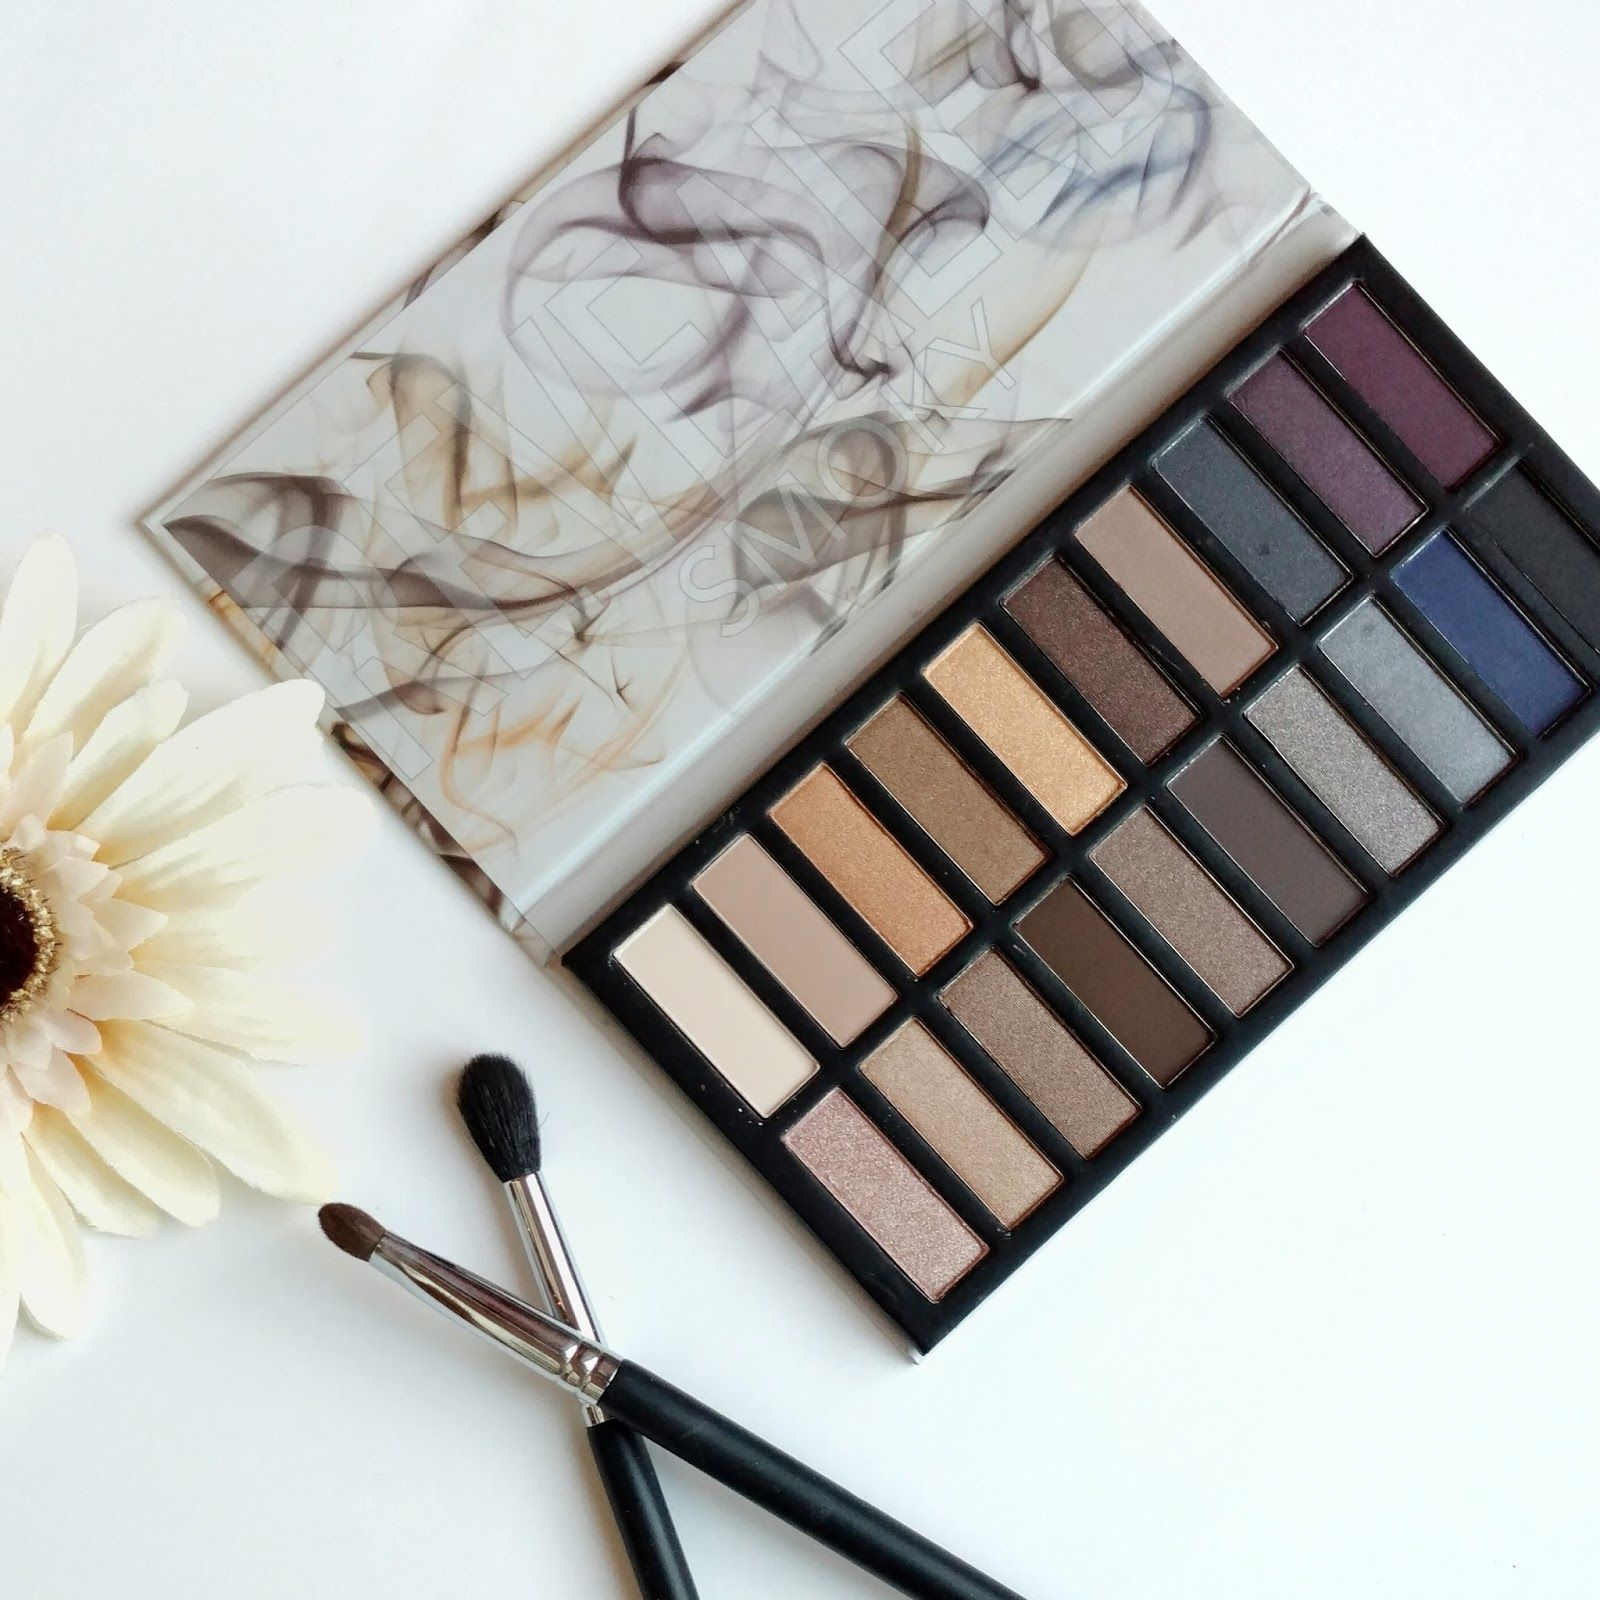 coastal scents revealed smoky palette review